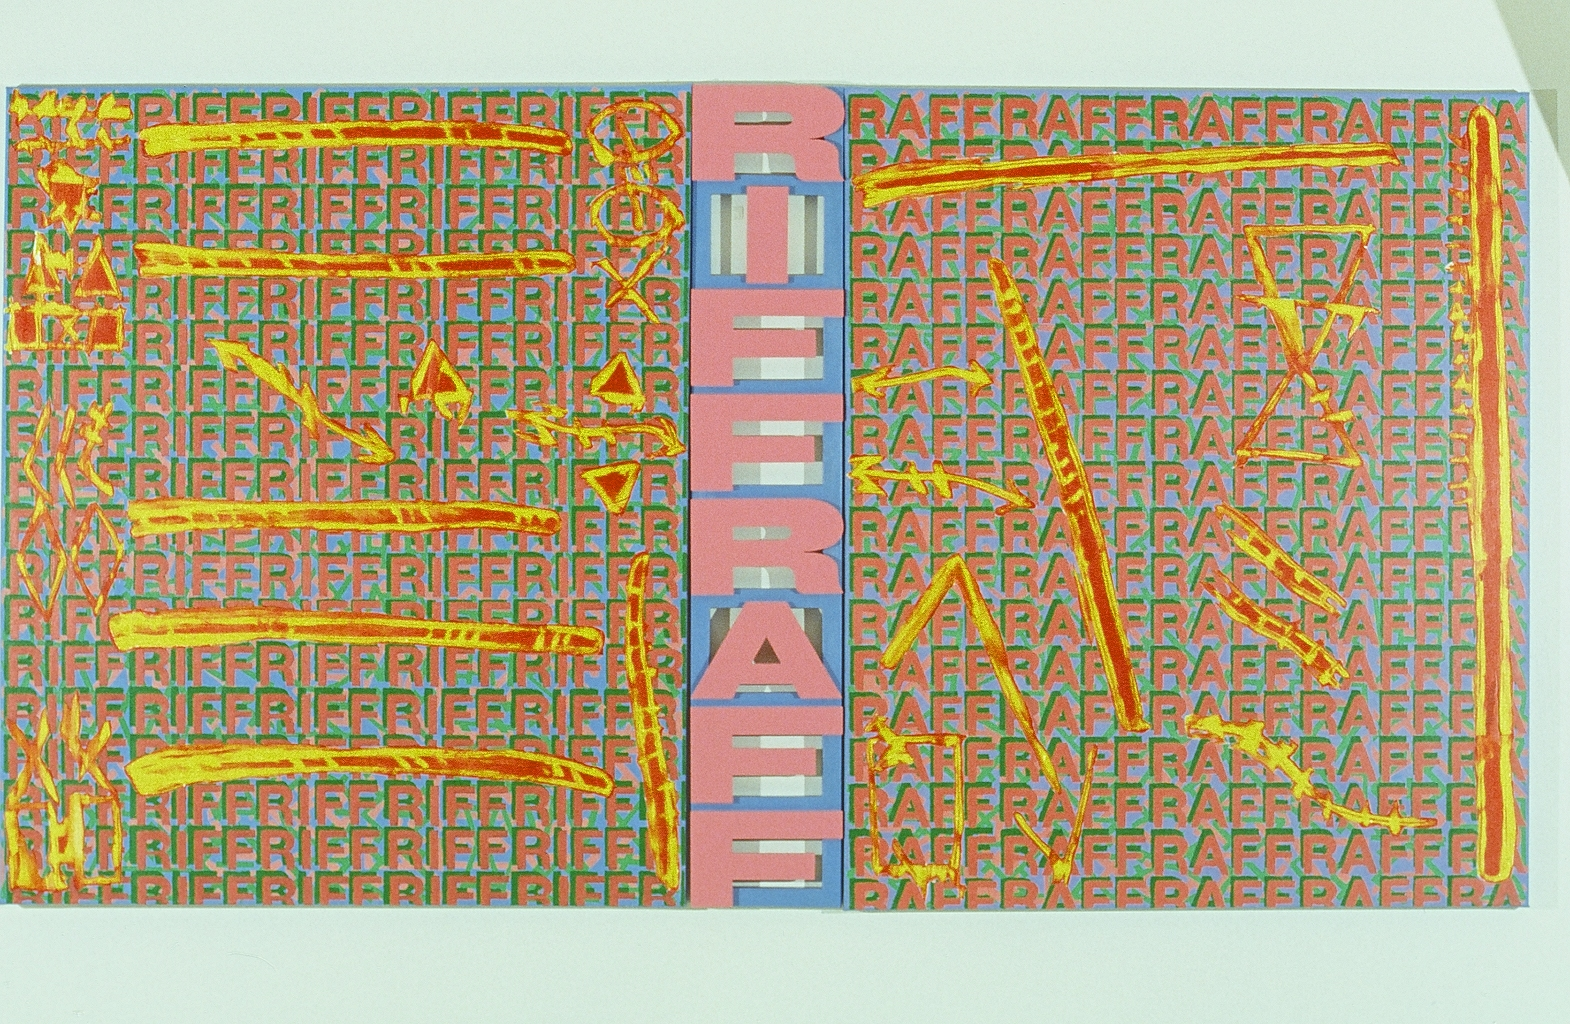 """Riff Raff (arty fax series)  60"""" x 120"""" (3 panels)  Wood and acrylic on canvas"""